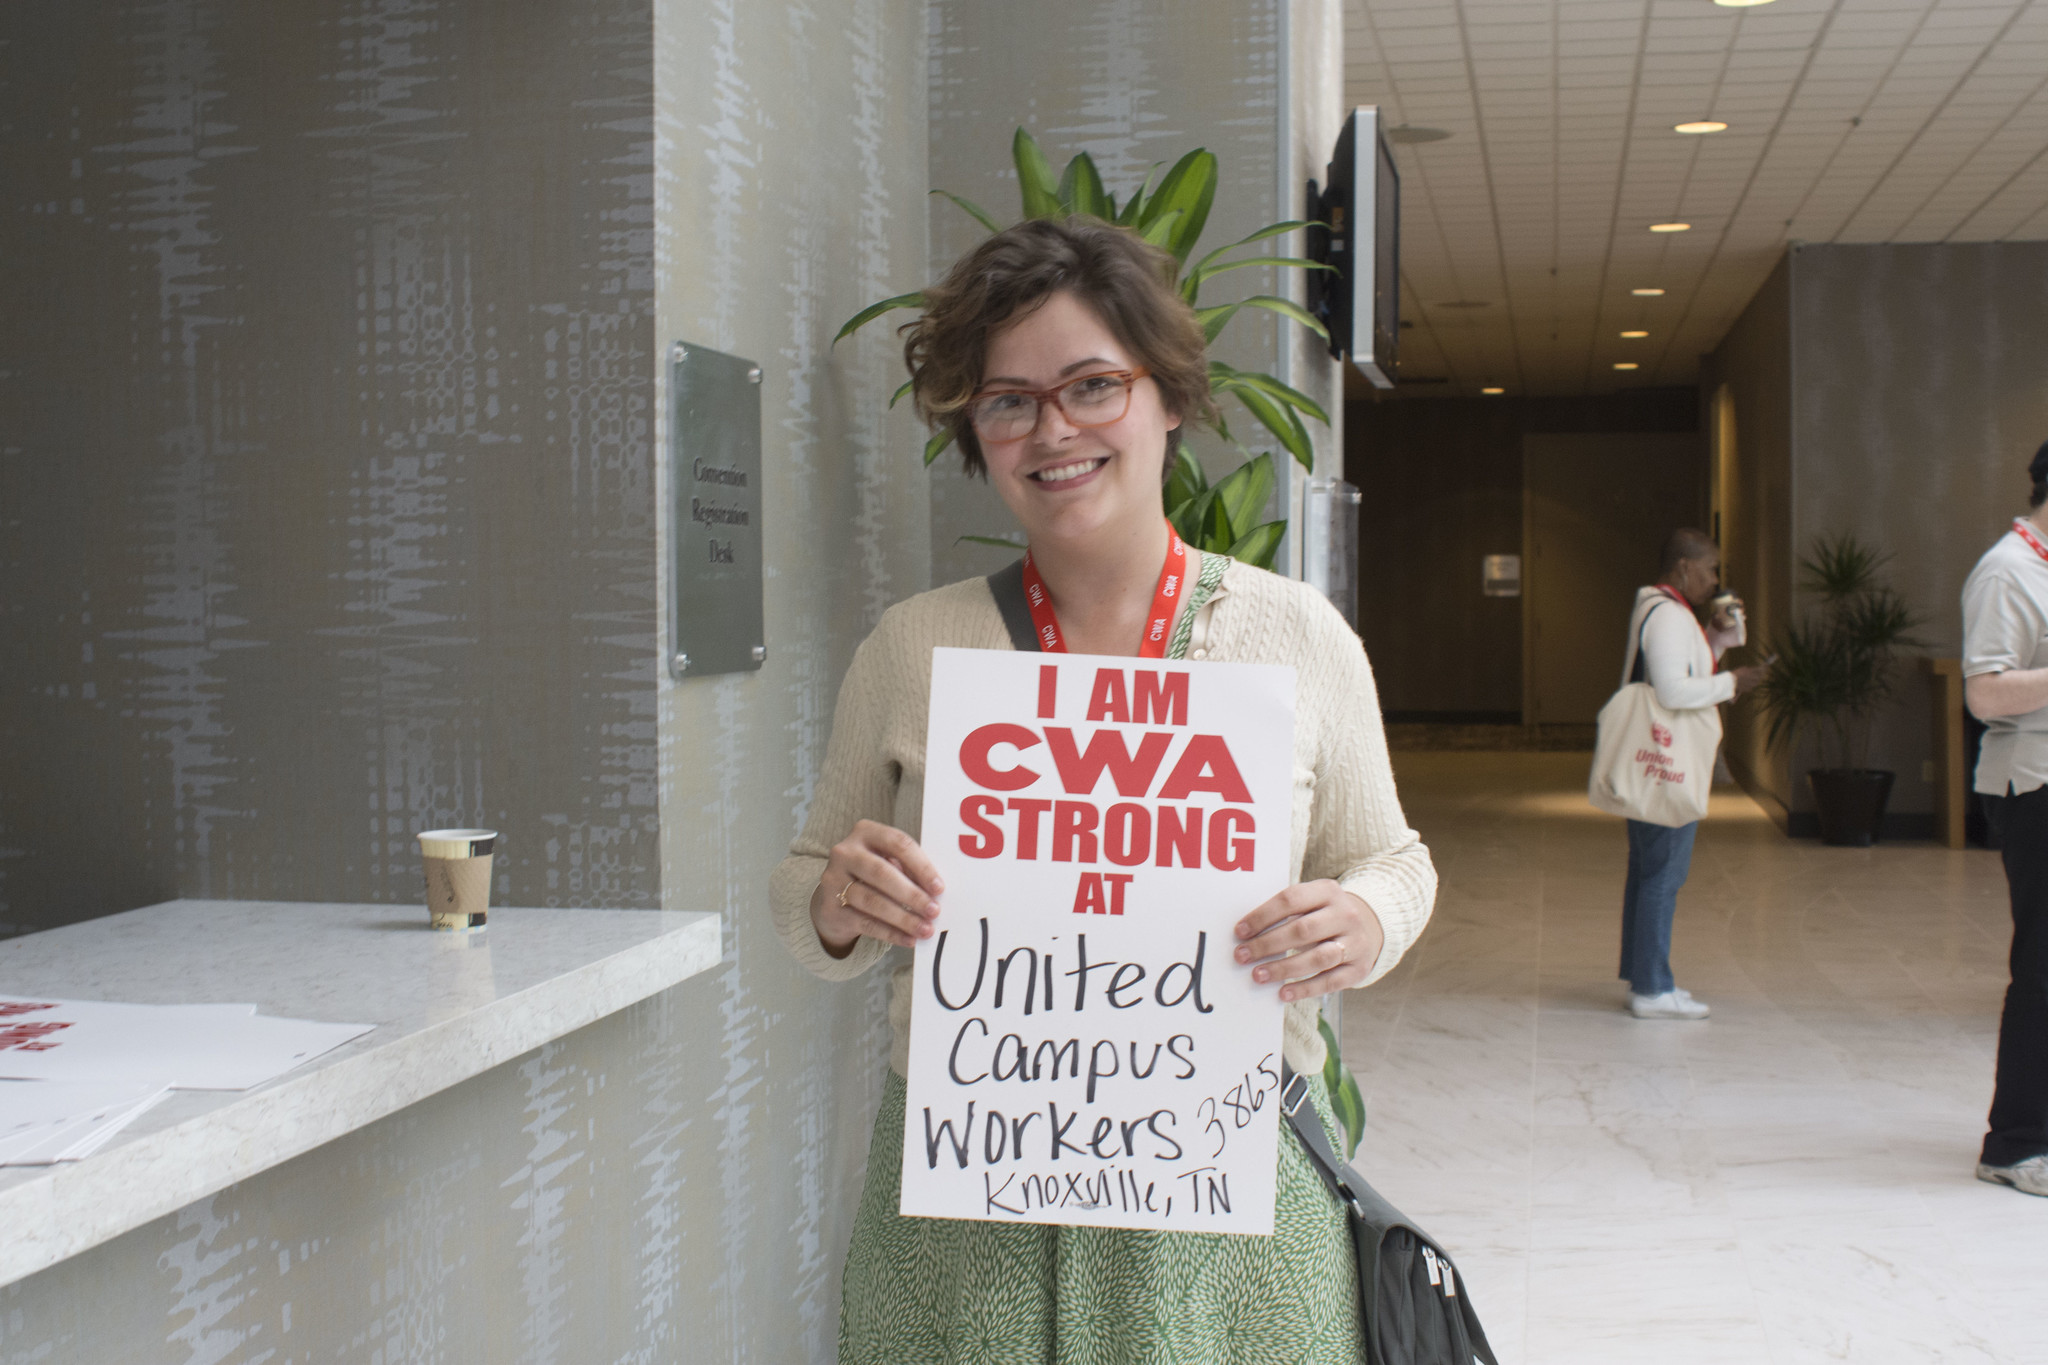 I am CWA STRONG